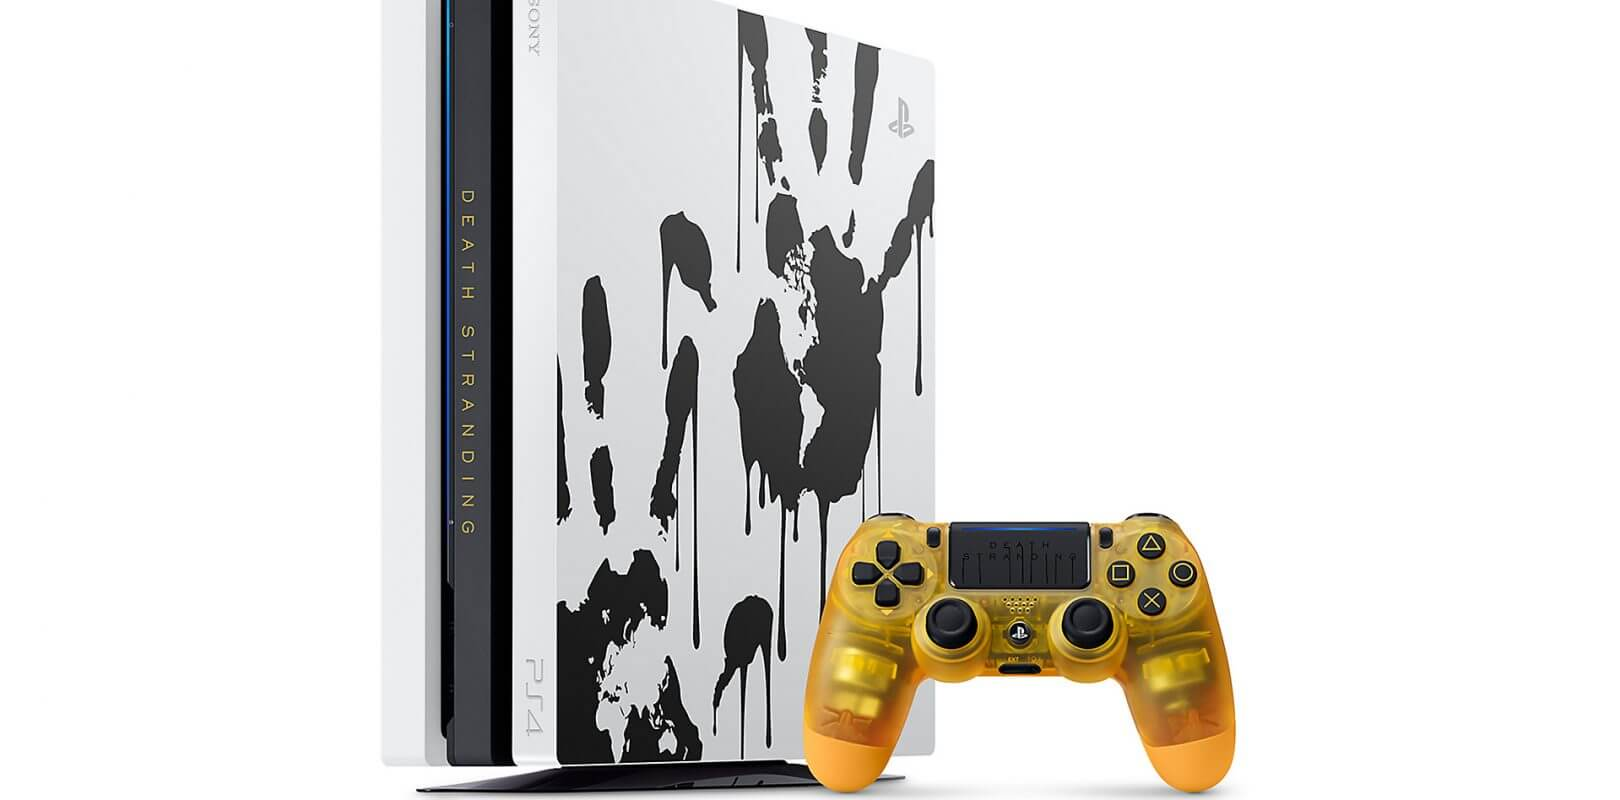 limited edition death stranding ps4 pro product shot 02 ps4 us 20sep19